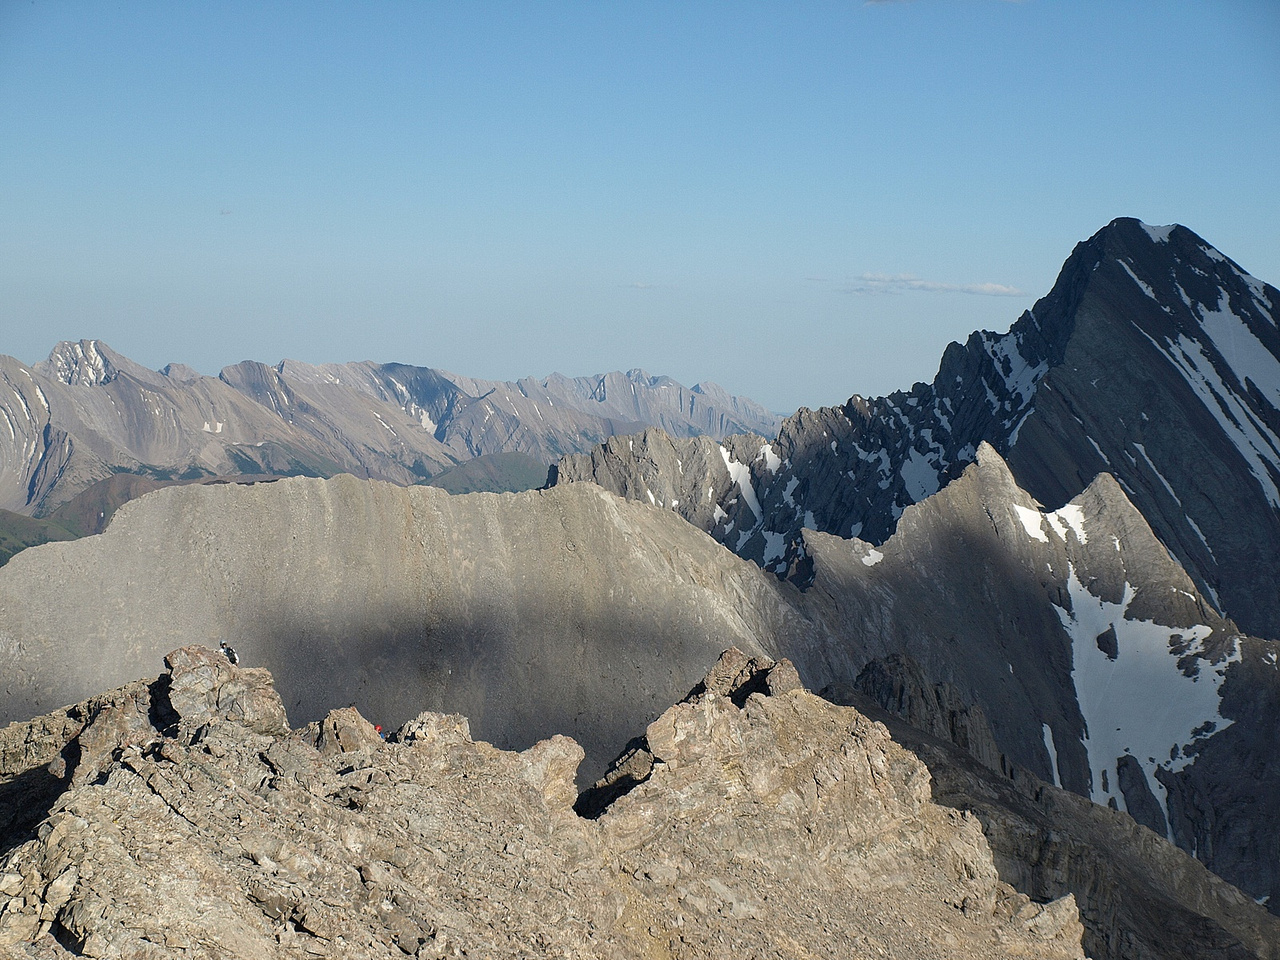 Wietse and Kev coming up to the summit - Storm on the right.